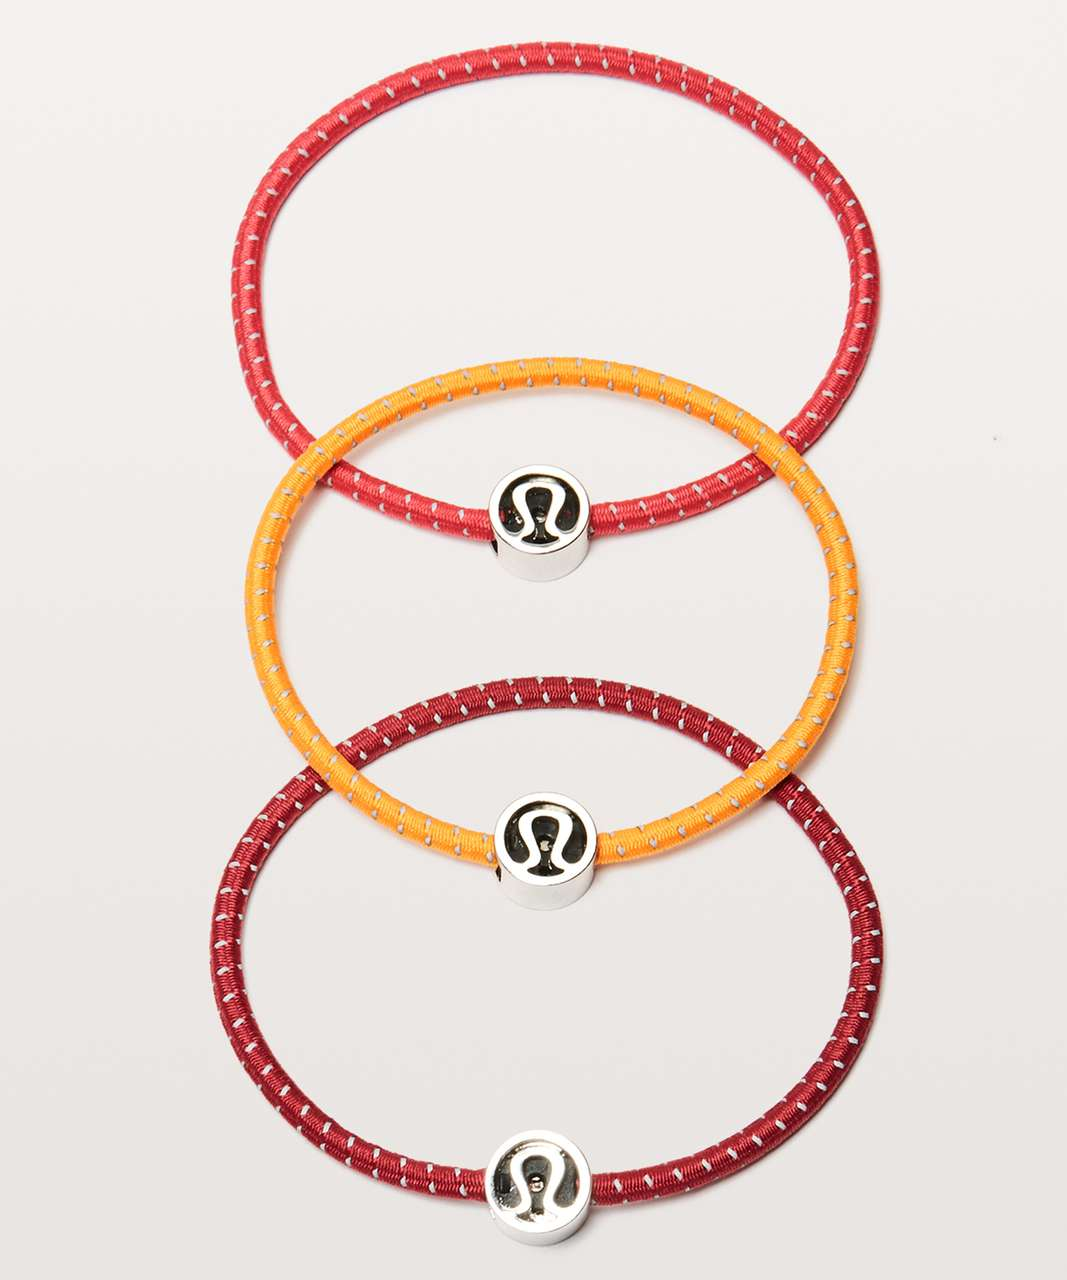 Lululemon Glow On Hair Ties - Vivid Amber / Ruby Red / Fuchsia Pink